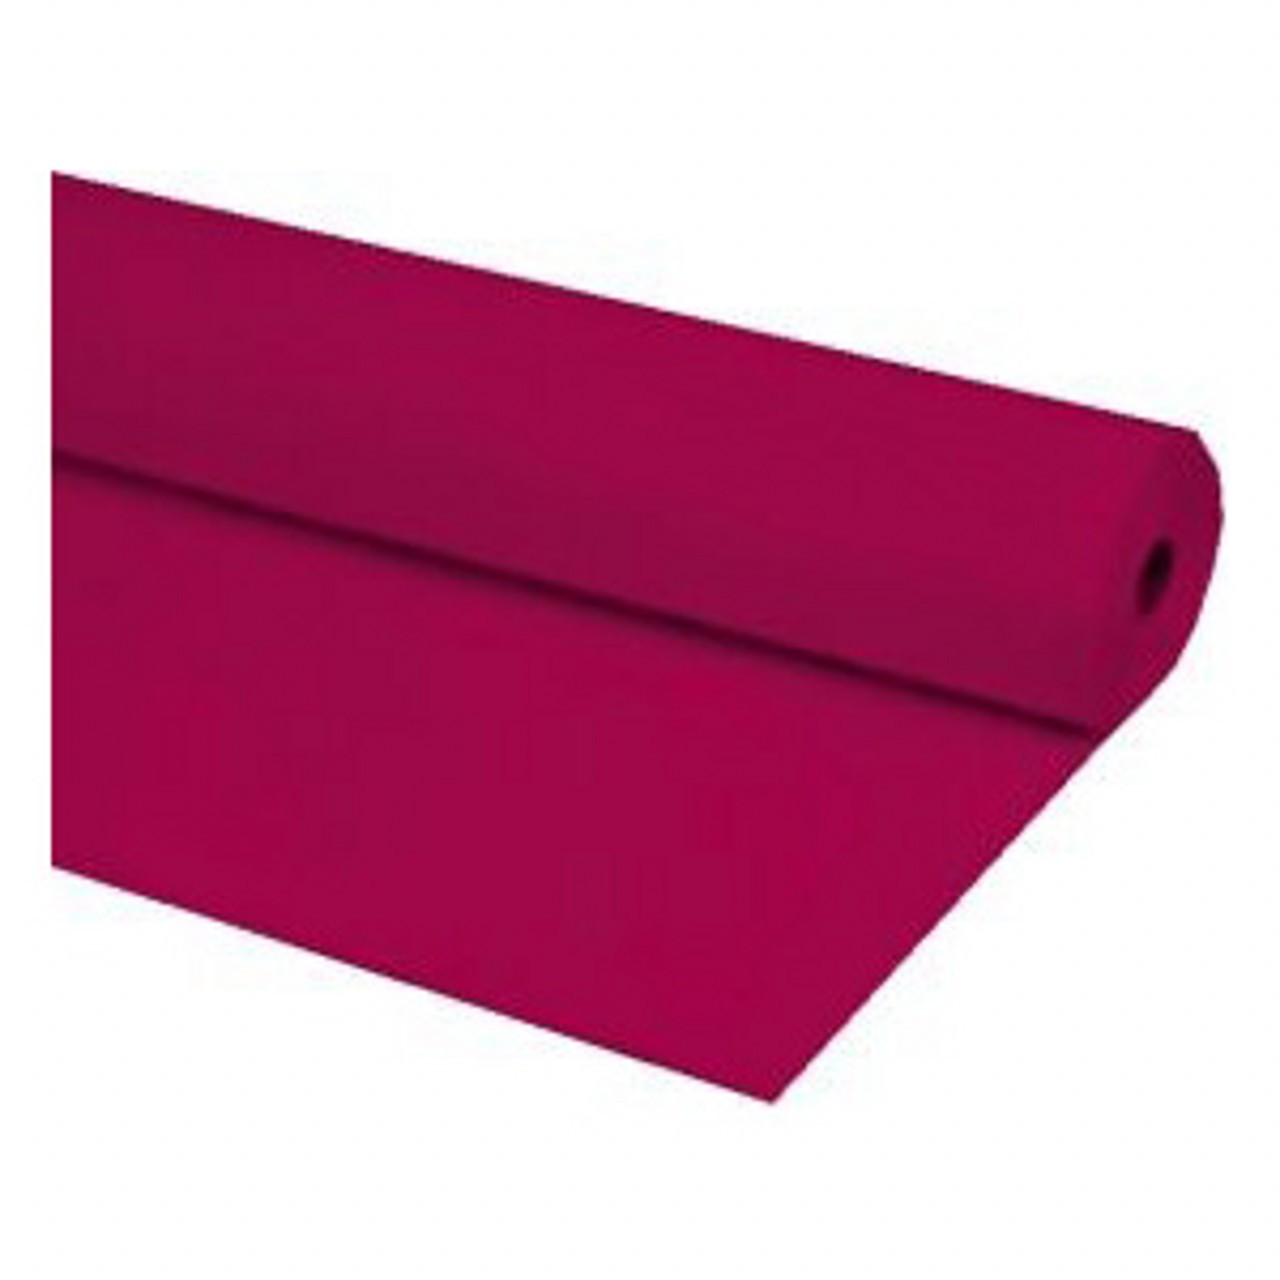 "40""x300 ft BURGUNDY Economy Banquet Roll Plastic Table Cloth"